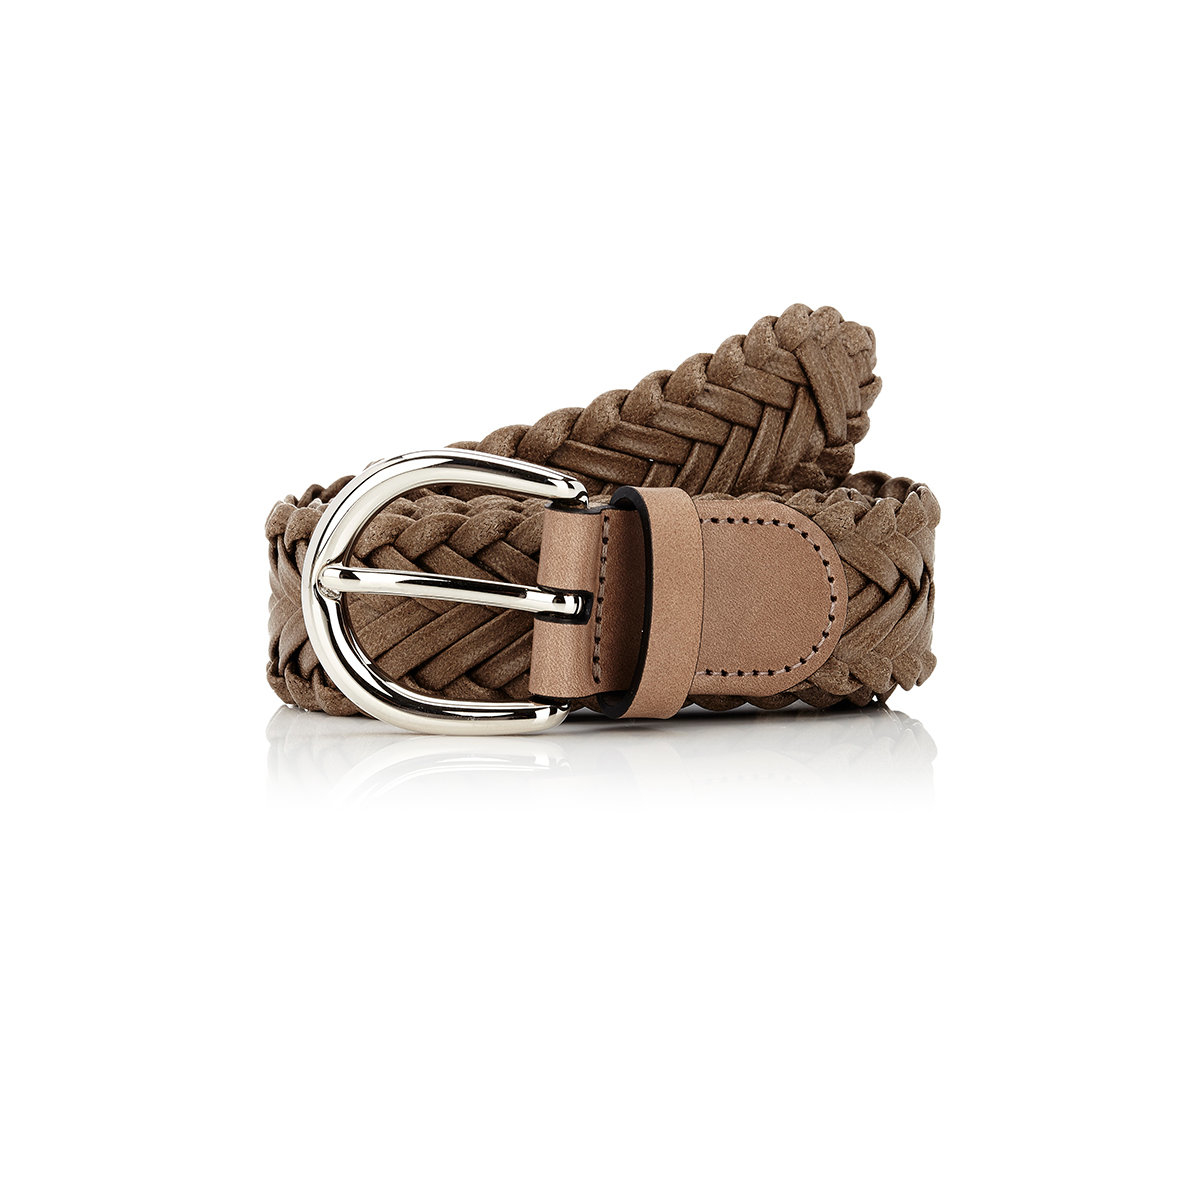 barneys new york s braided leather belt in brown for